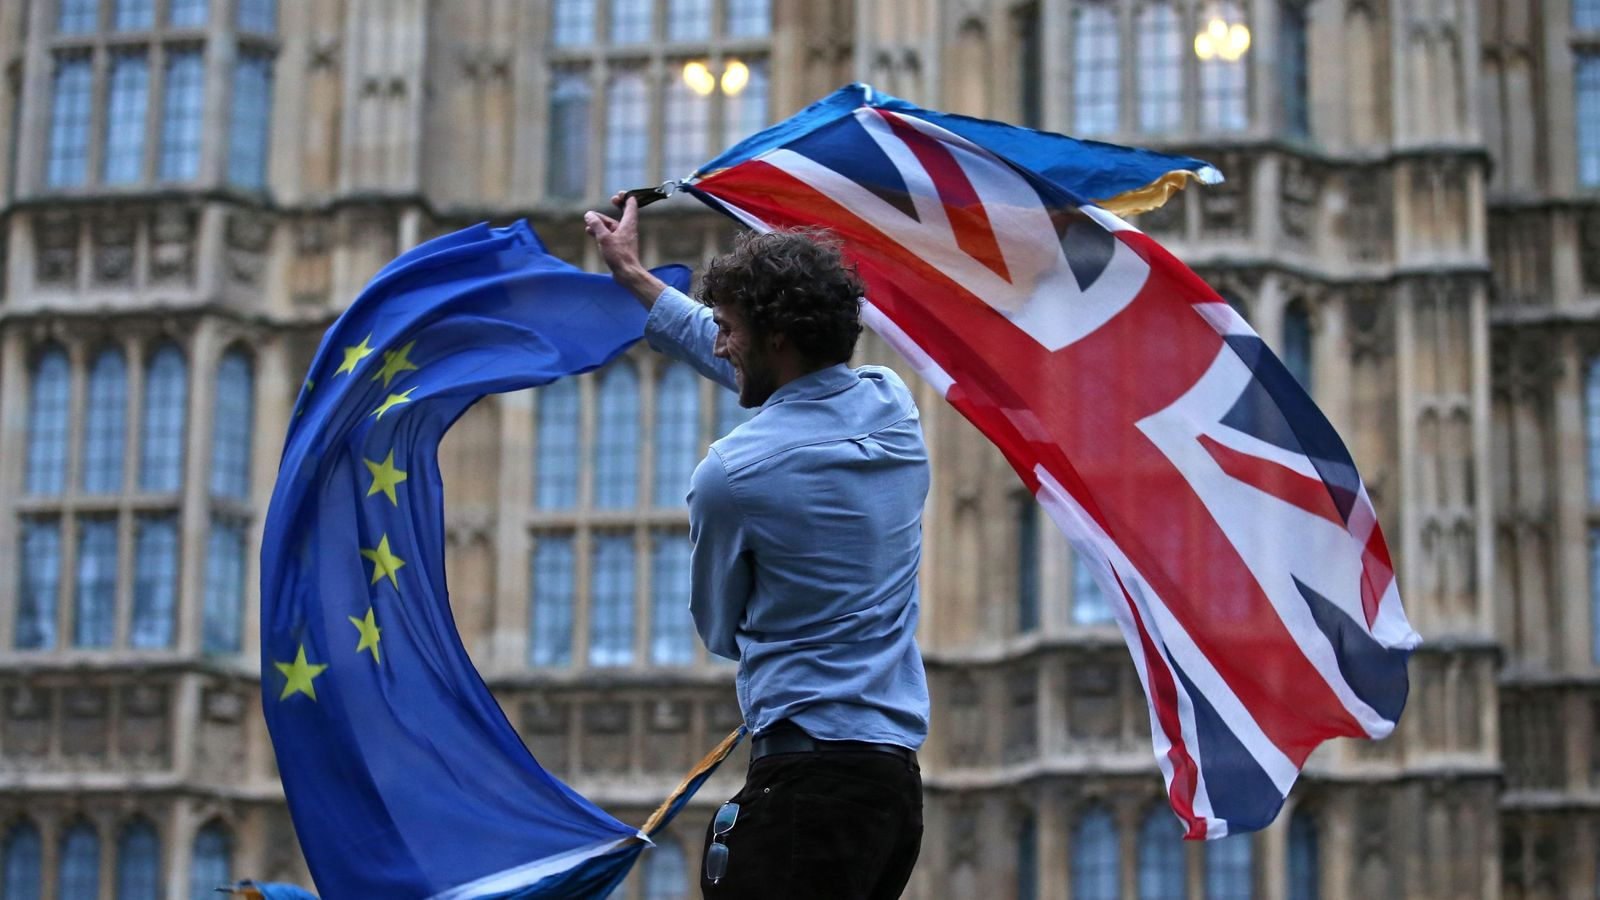 A man waves both a Union flag and a European flag together on College Green outside The Houses of Parliament at an anti-Brexit protest in central London